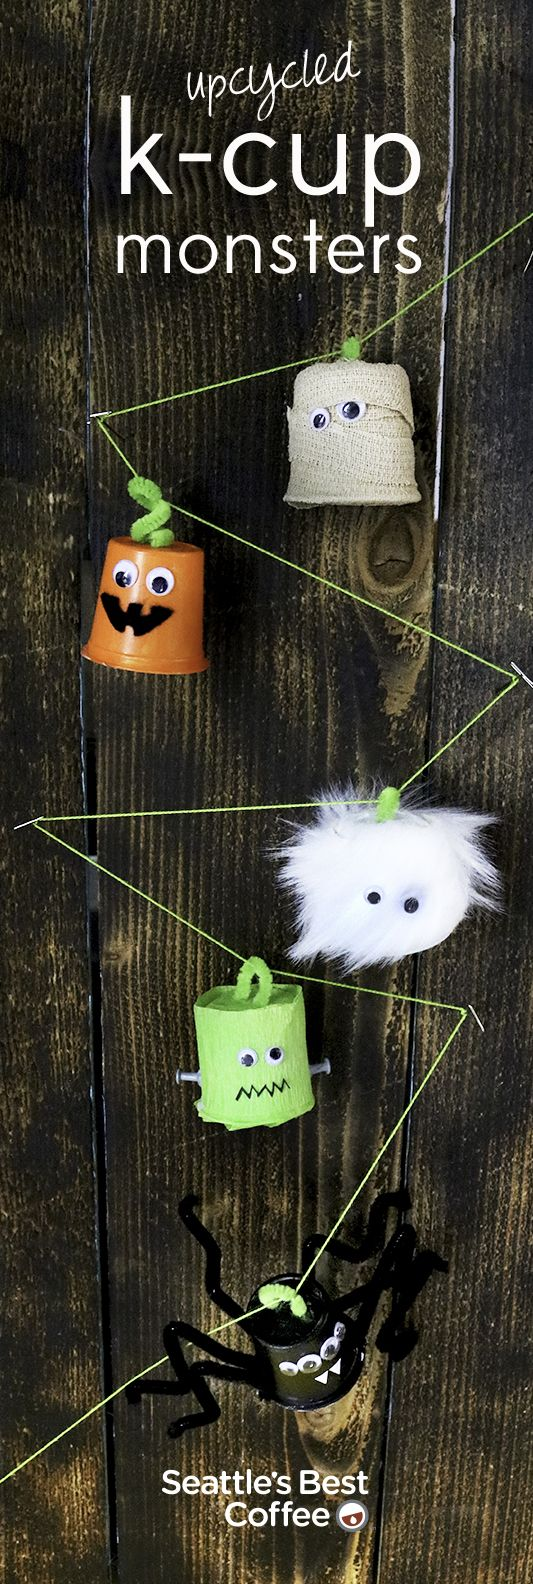 These adorable upcycled K-Cup monsters are perfect for any Halloween party.   MATERIALS: Paint and craft decorations   INSTRUCTIONS: Start with clean, empty K-Cup pods. Paint and decorate to your heart's desire.